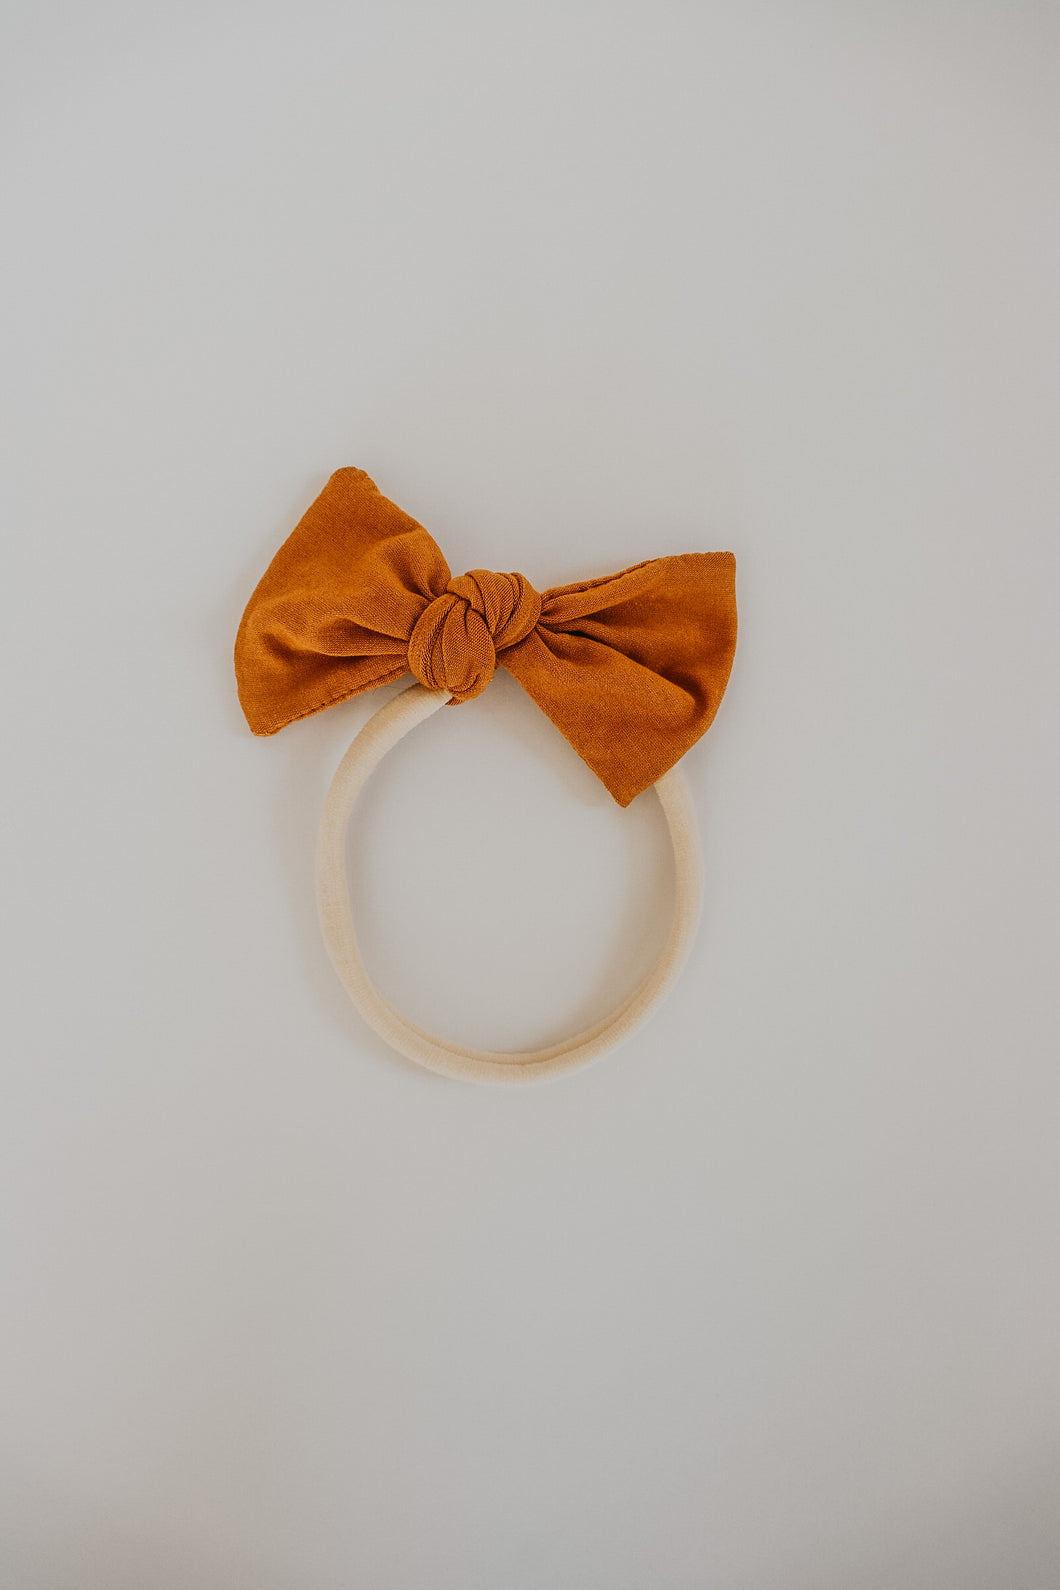 Honeybee Knot Headband ☼